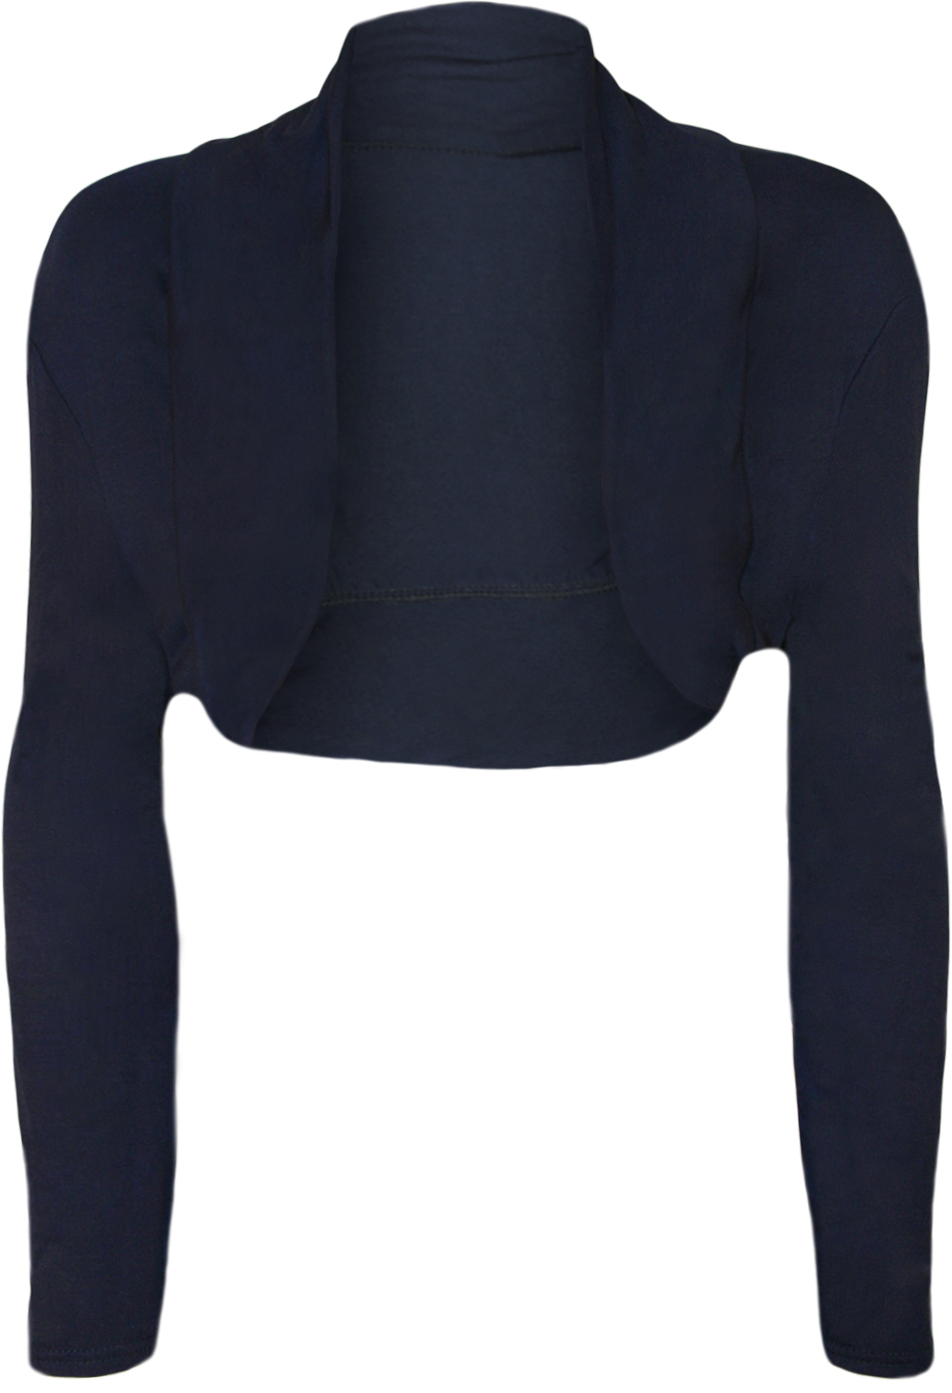 Navy Blue Cropped Cardigan - Cardigan With Buttons